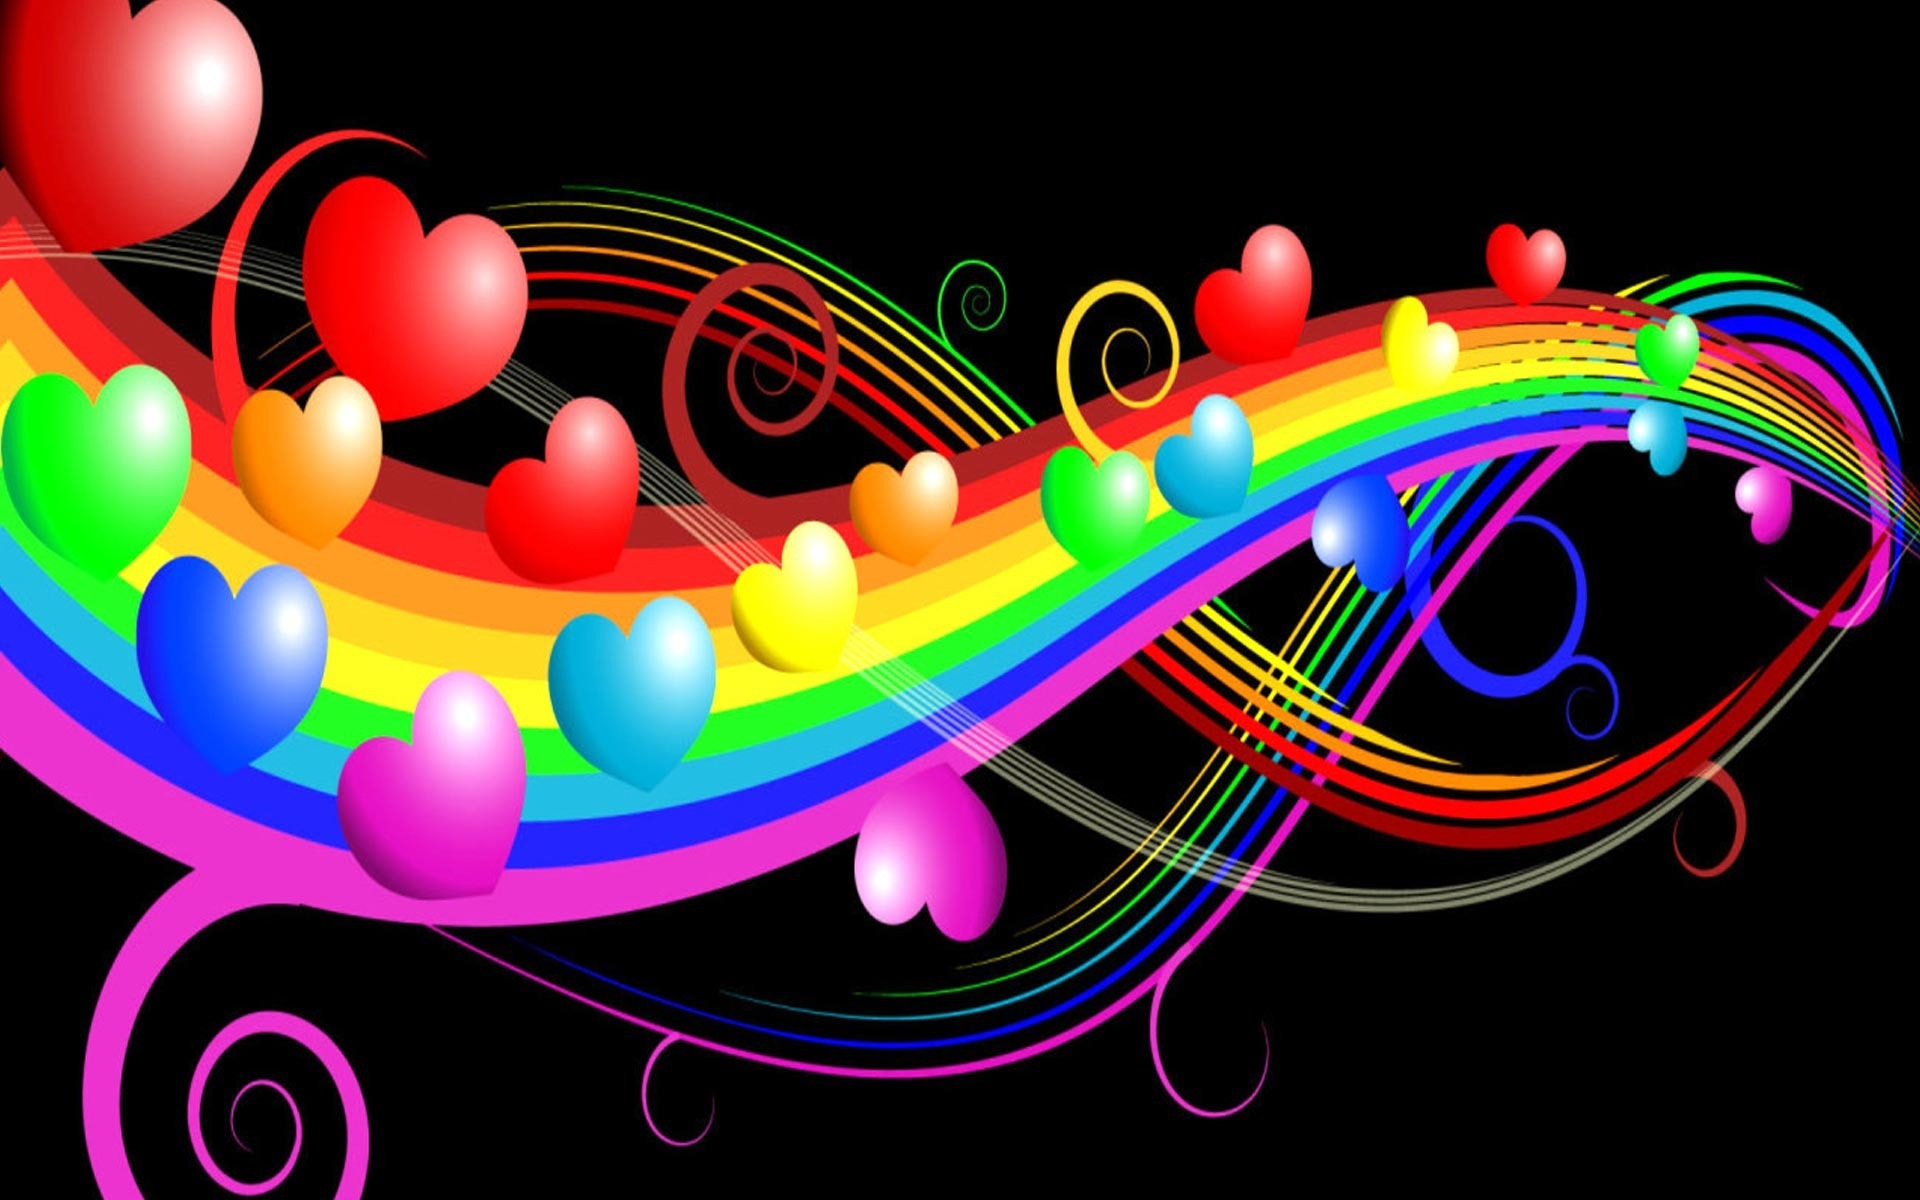 Rainbow Hearts Wallpaper